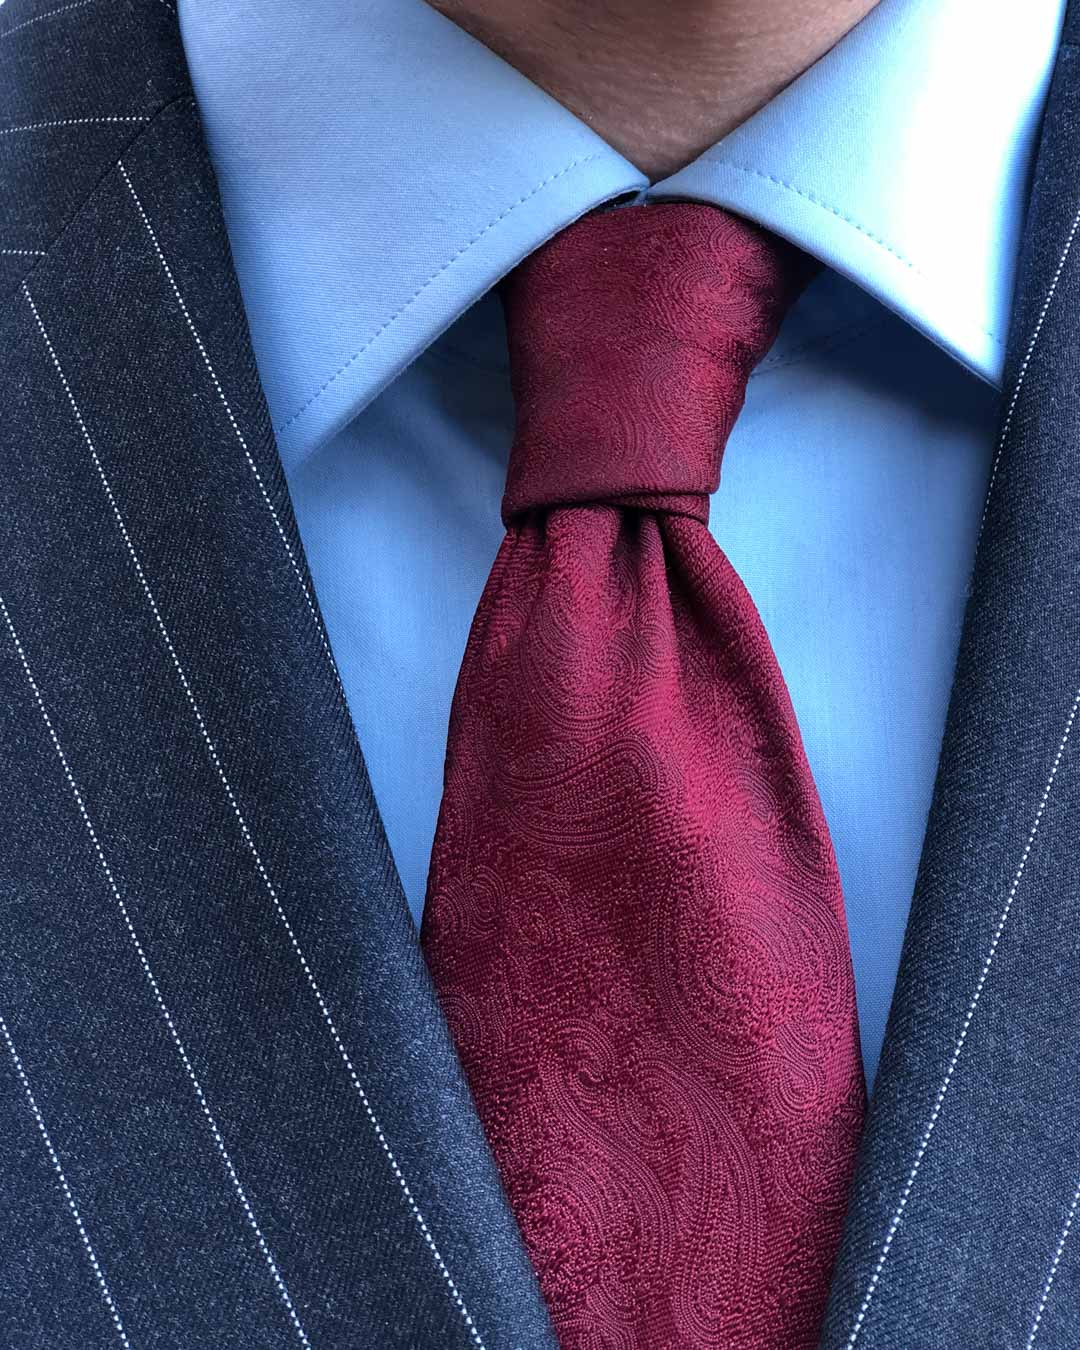 Pinstripe Suit Guide - Suit and Tie